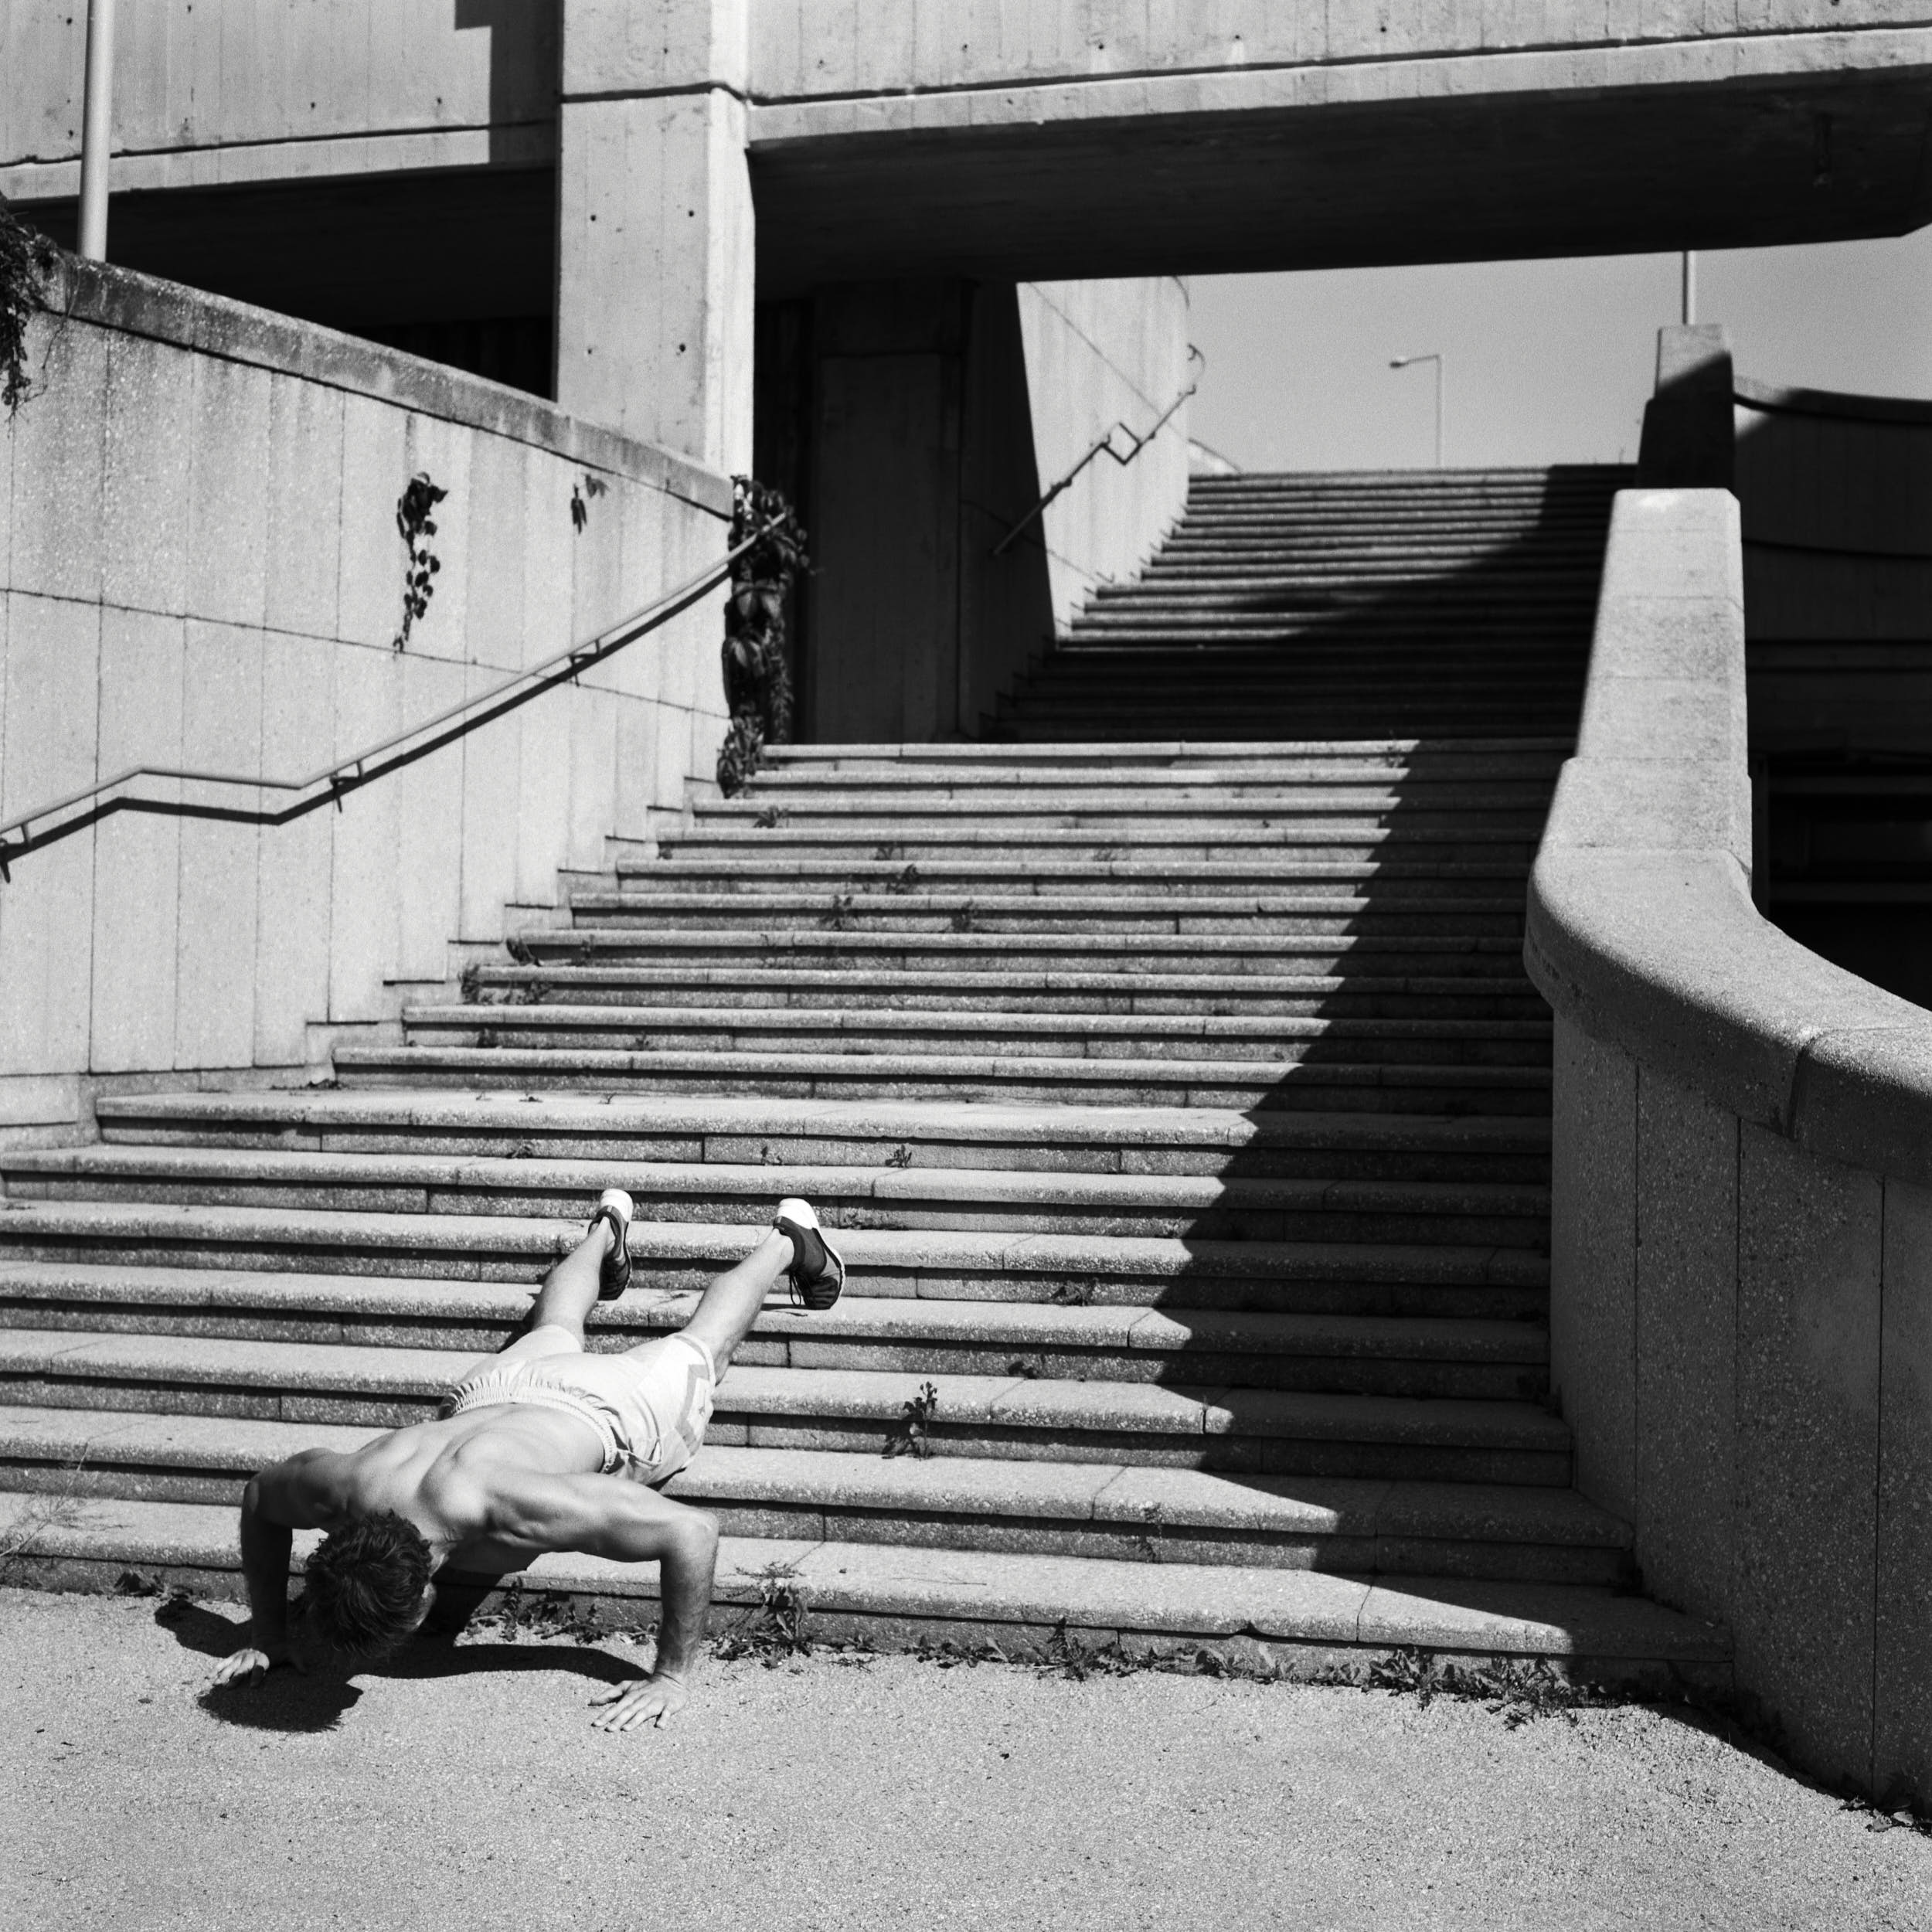 Crossfit athlete doing push ups on a concrete staircase.